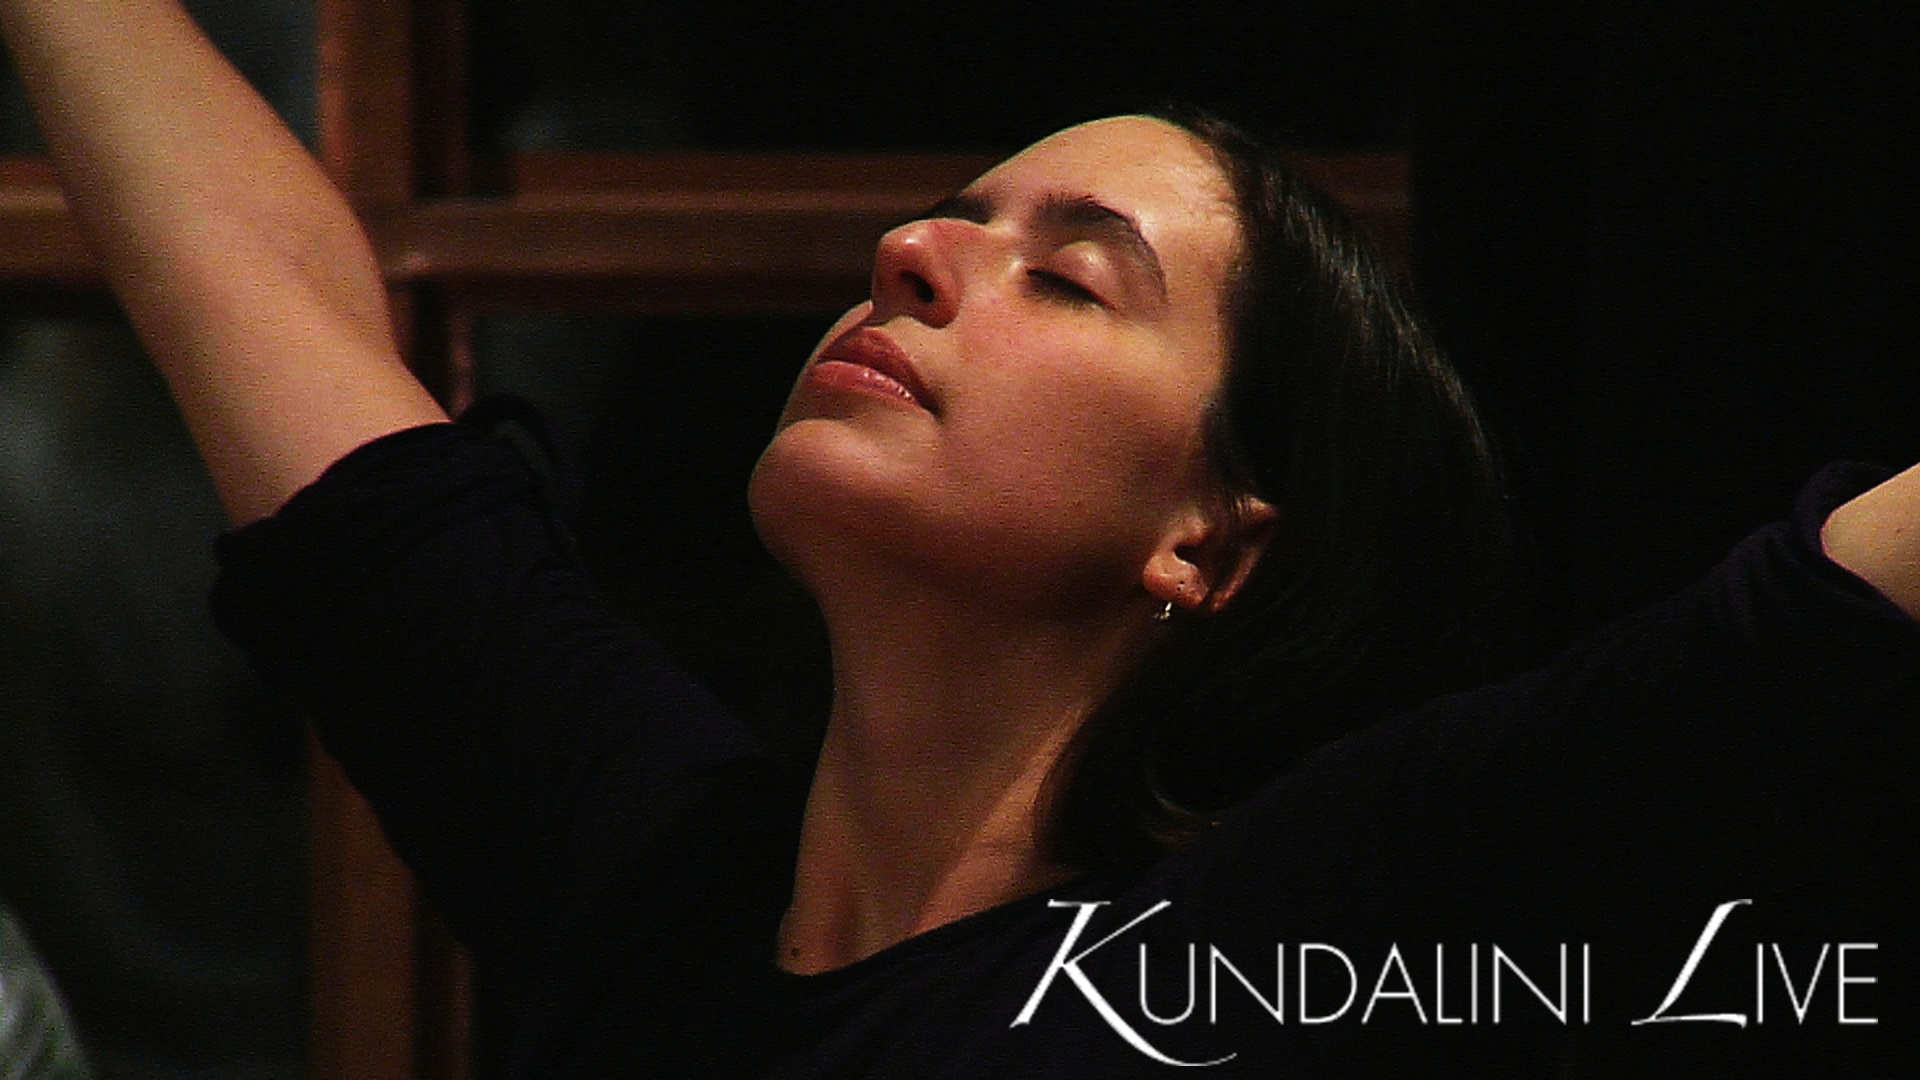 Kundalini Live – Yoga Videos Online, Free Streaming Yoga